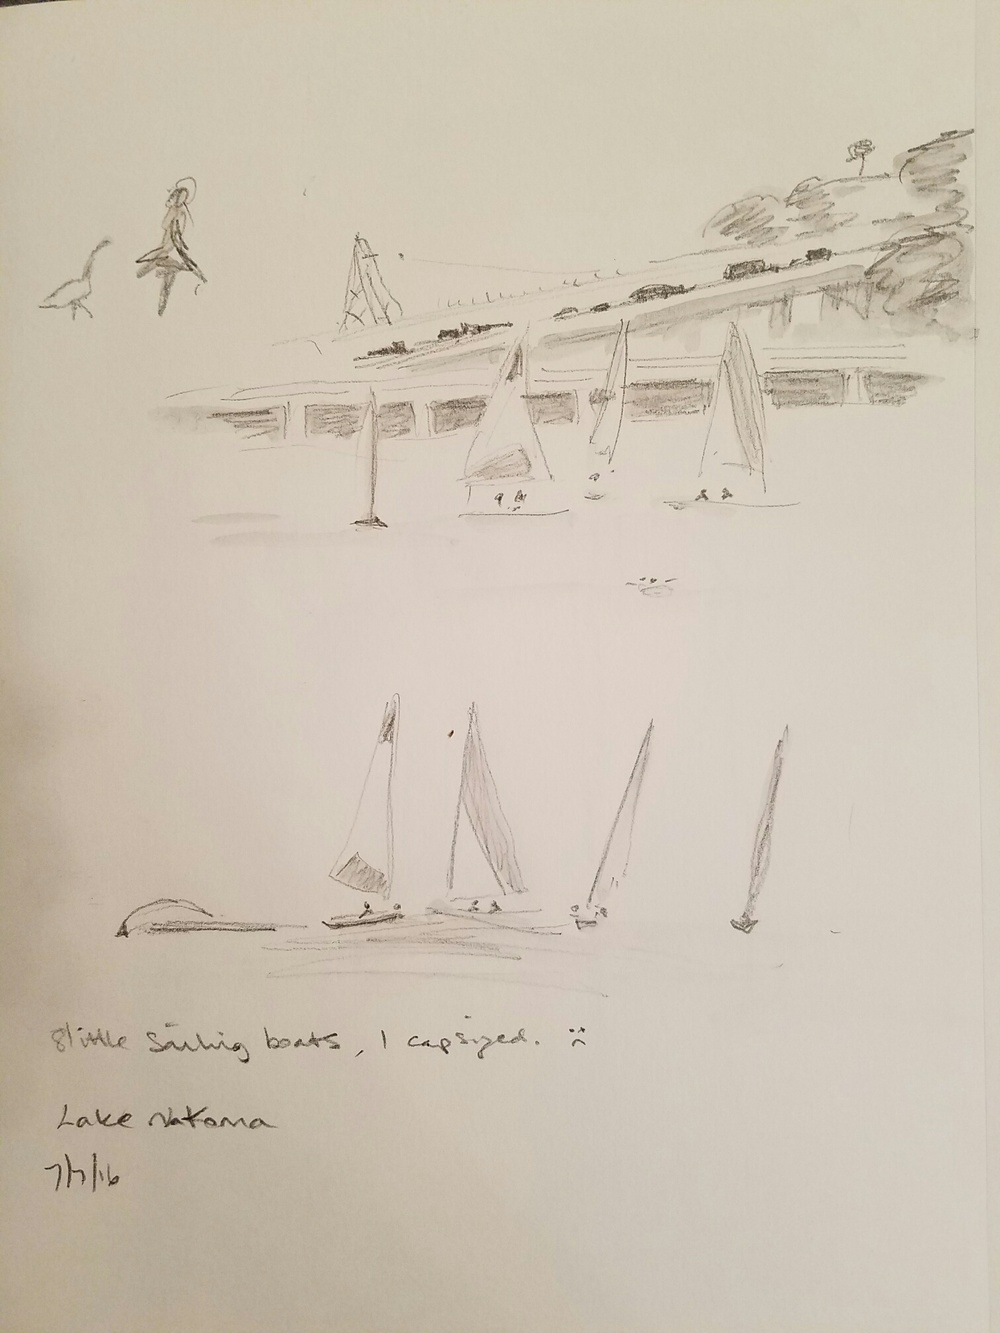 Quick sketches of the real sailboats.